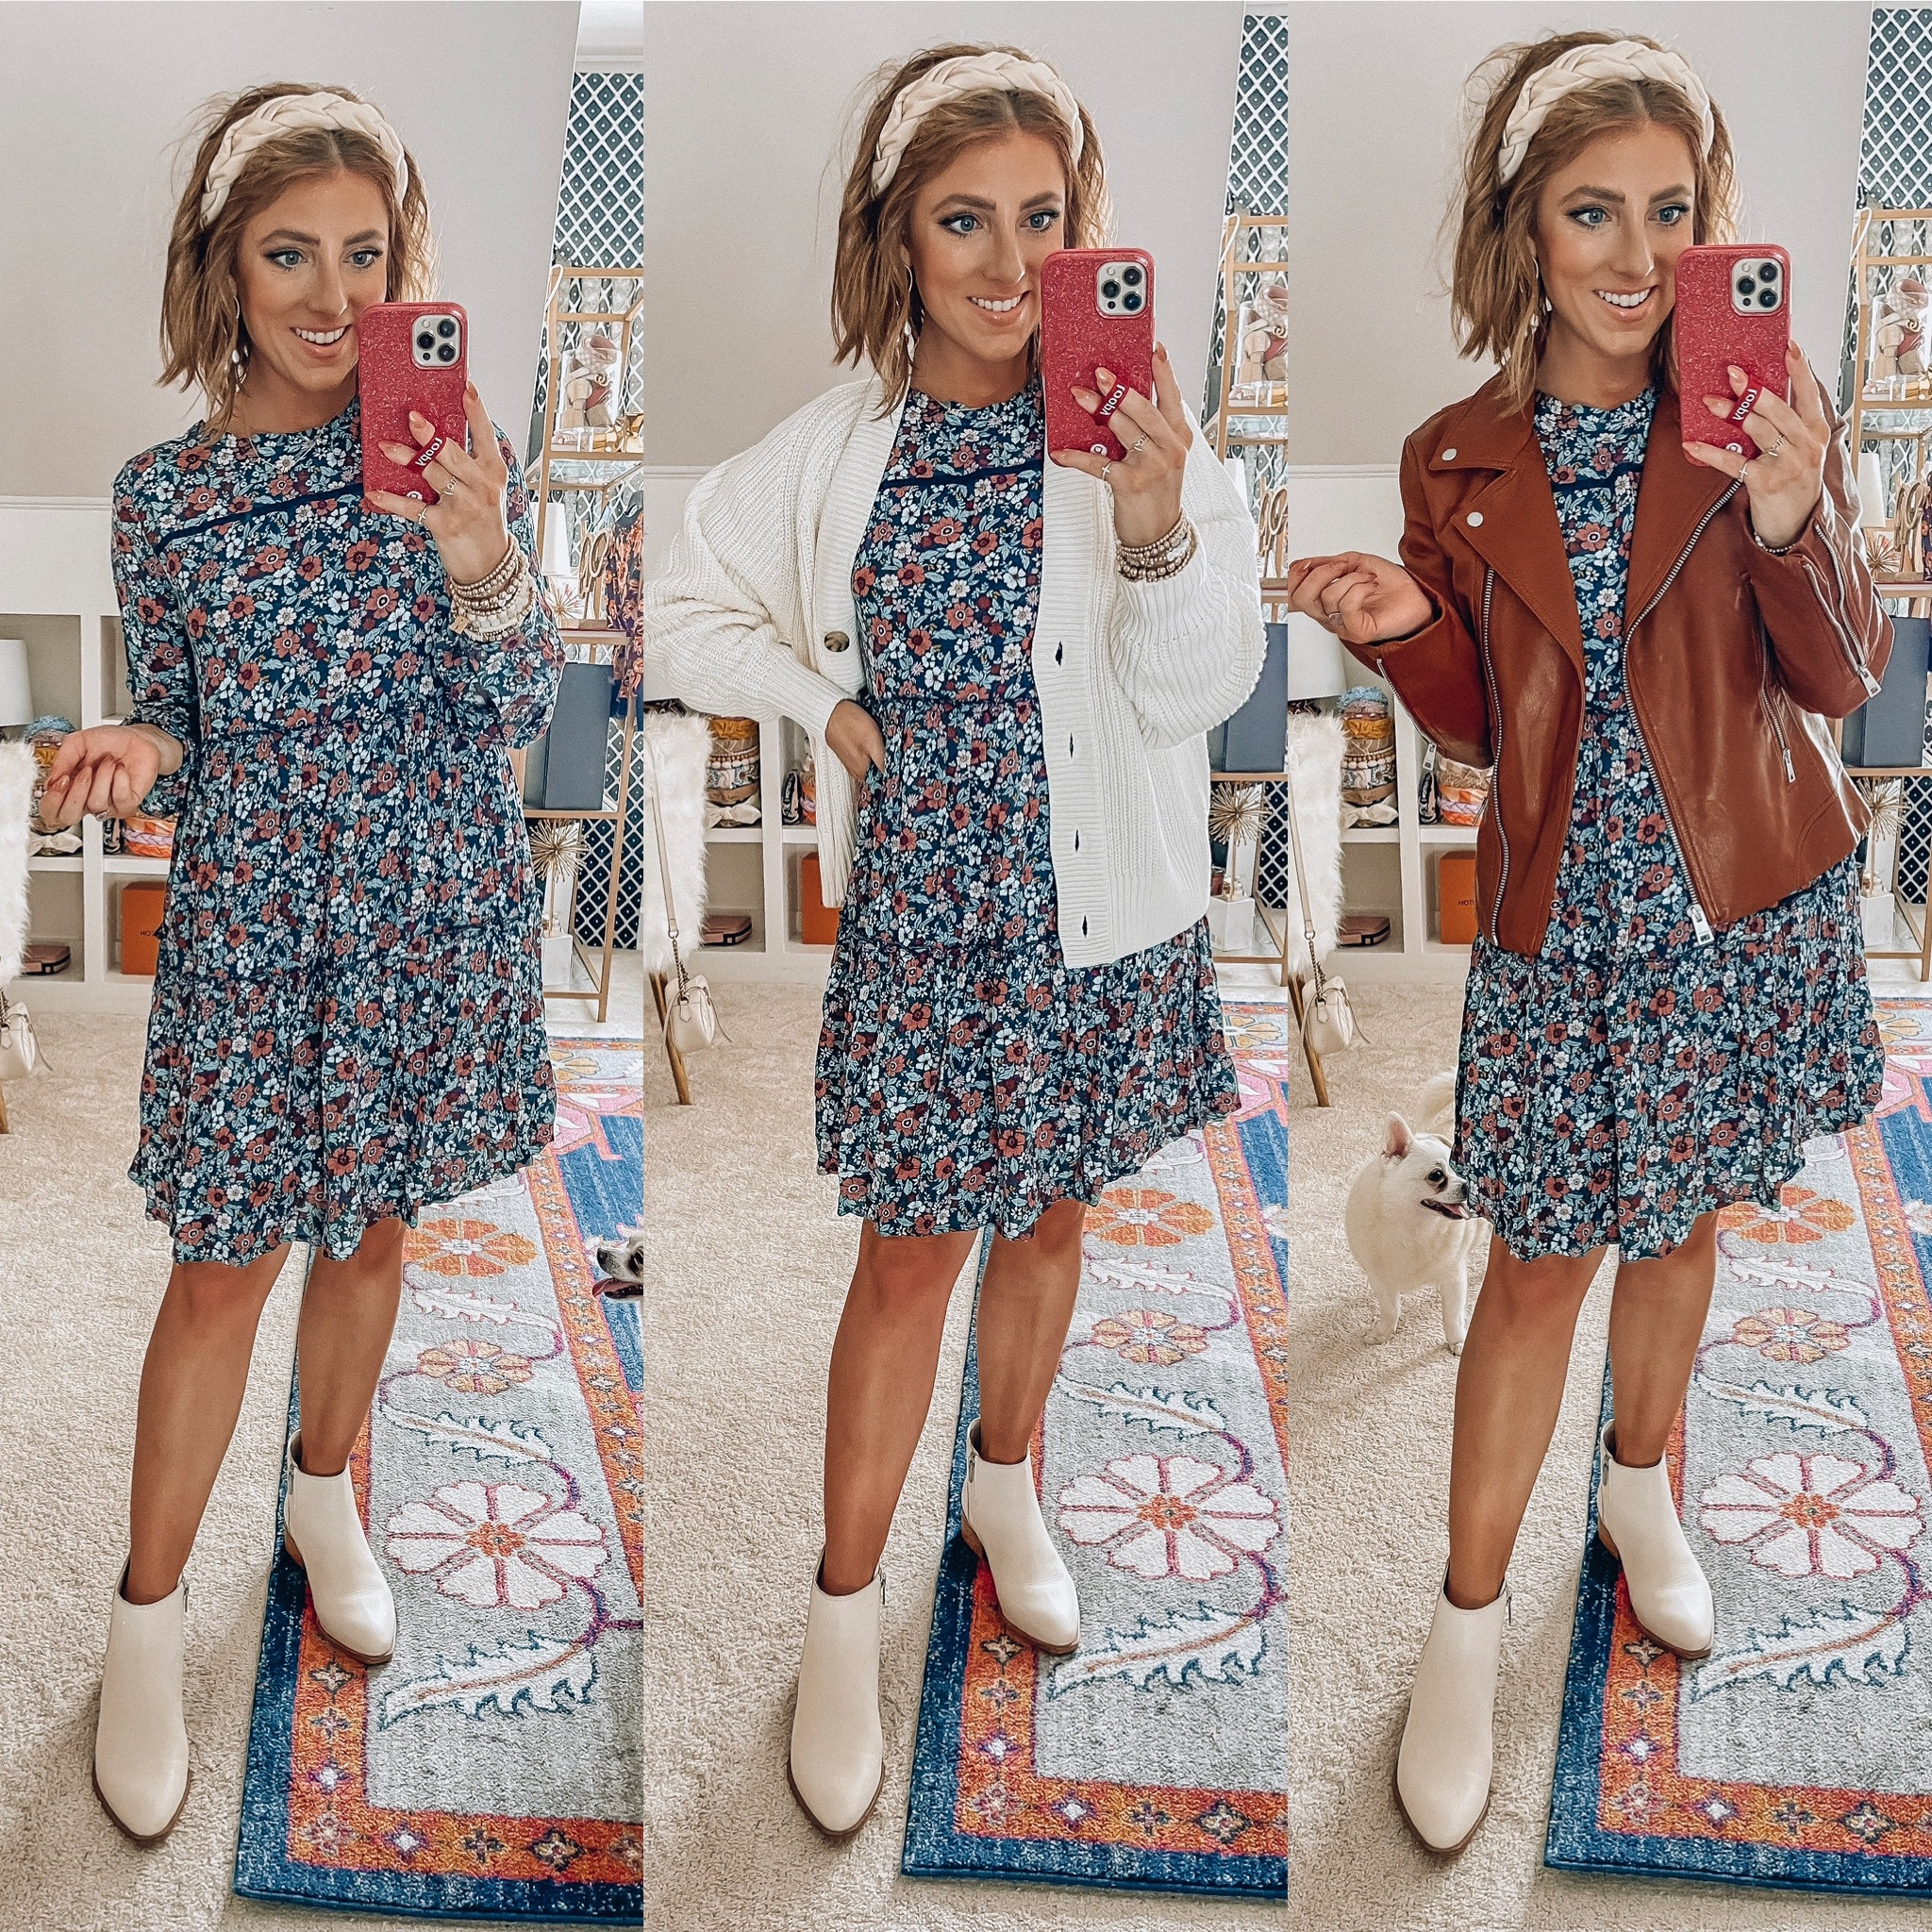 New Target Arrivals for Fall 2021 - Something Delightful Blog @racheltimmerman on IG #fallstyle #targetstyle #fall2021fashion #affordablefashion